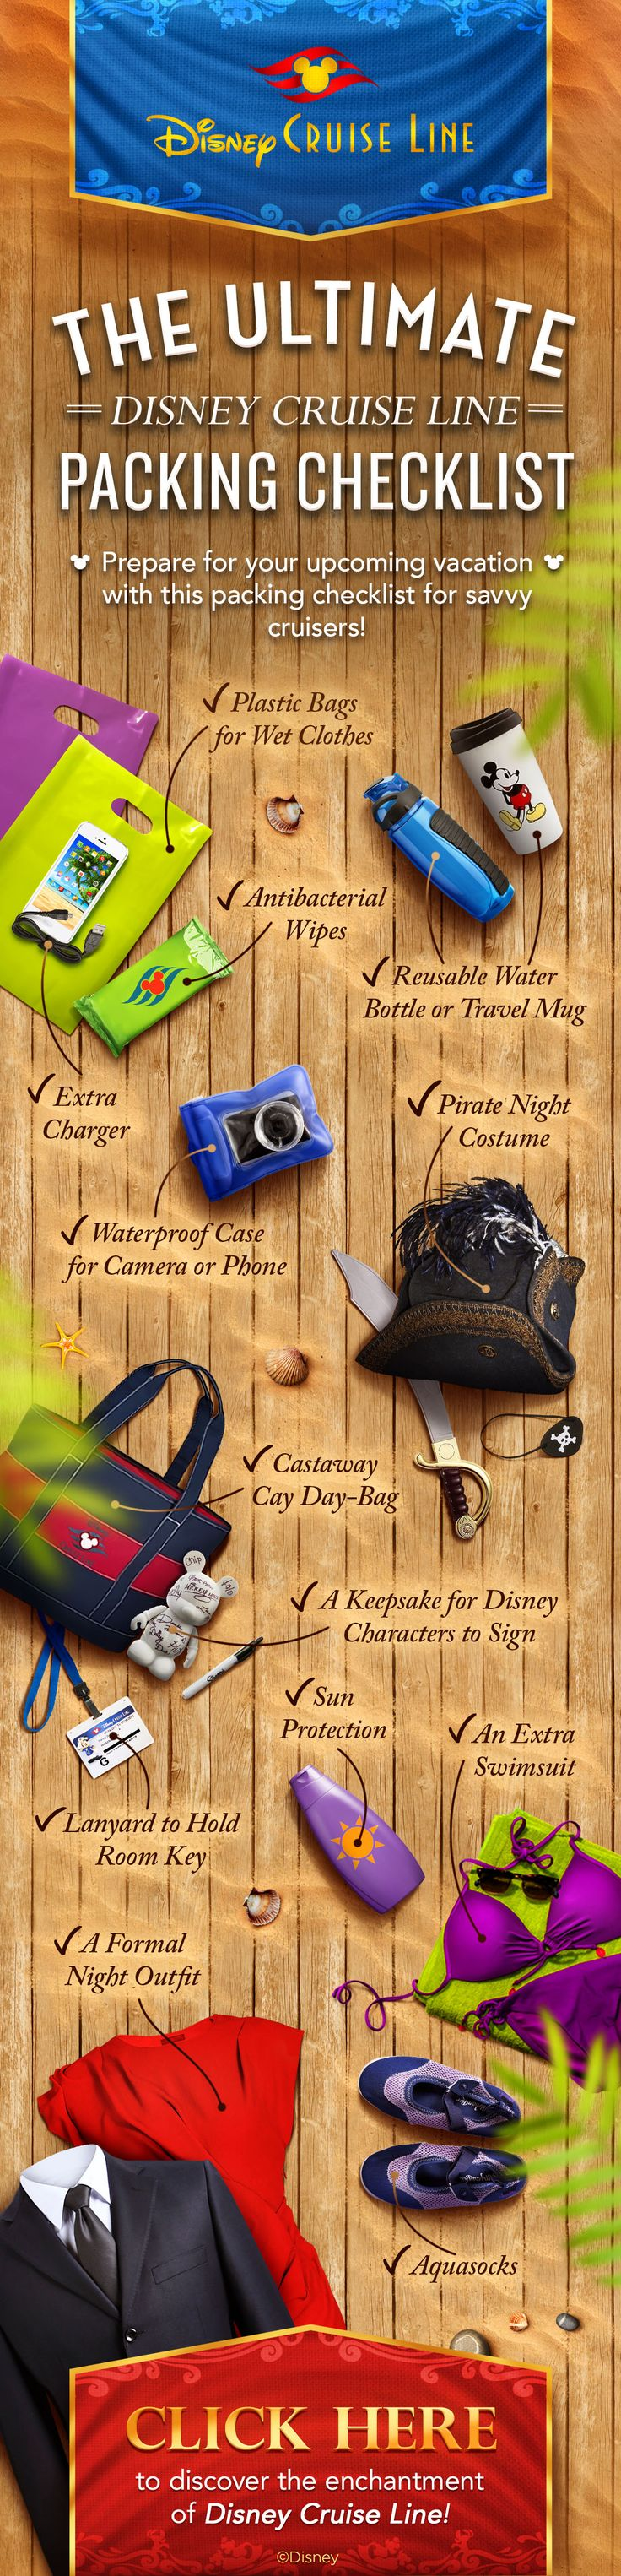 Here's your ultimate Disney Cruise Line packing checklist!